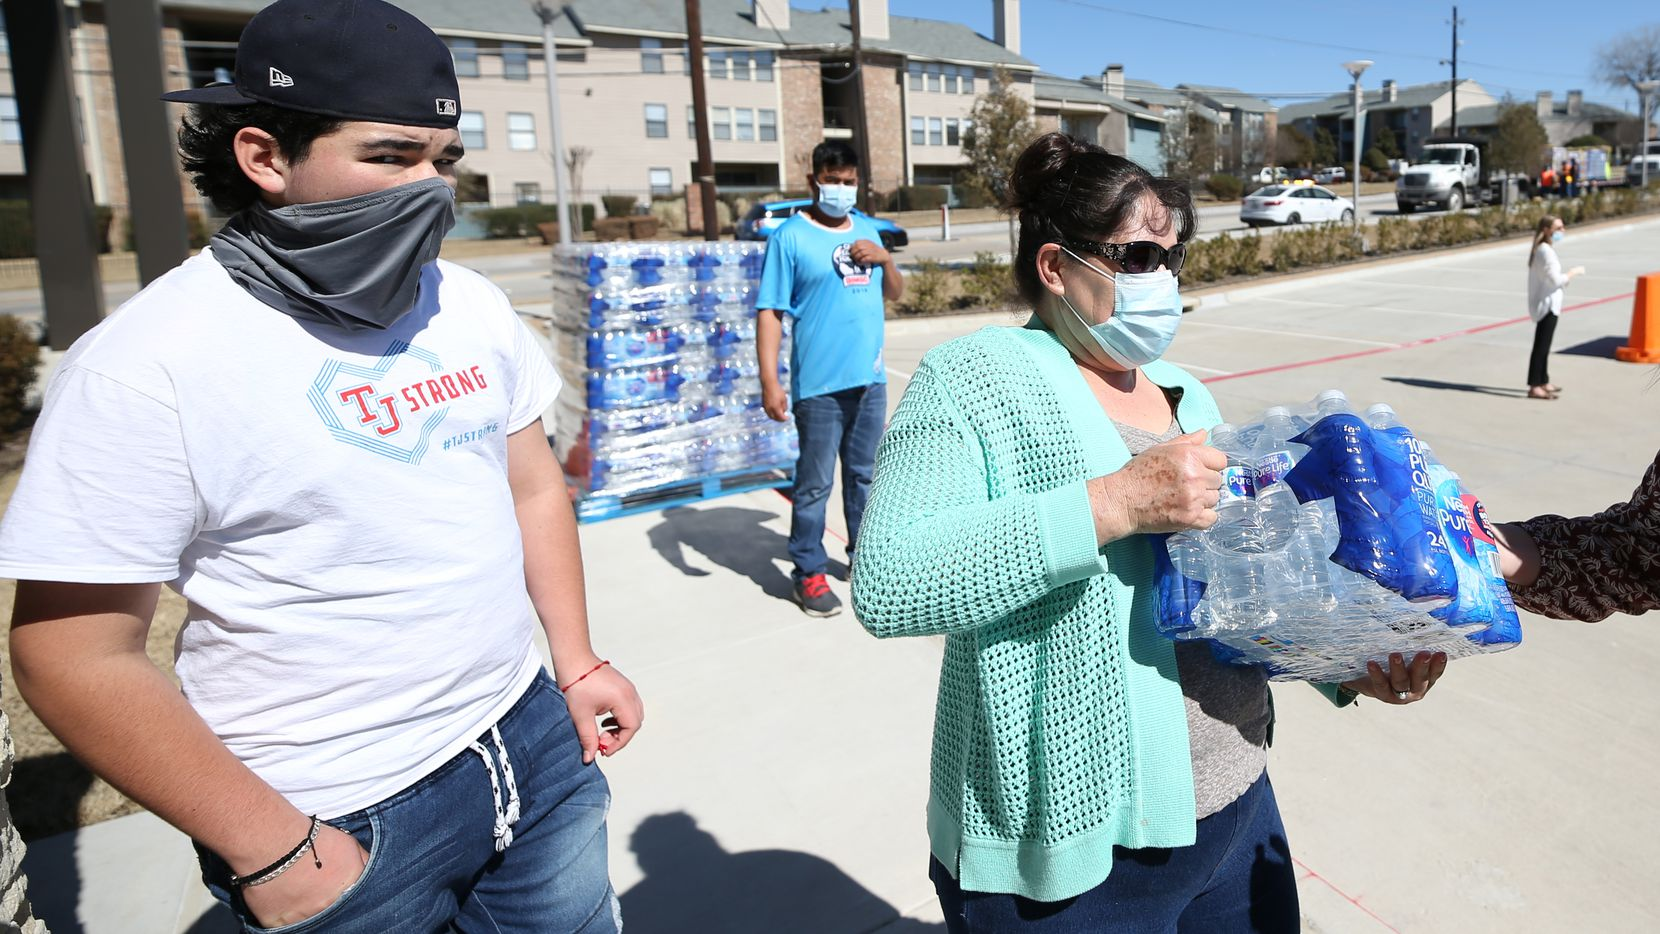 Area resident Belia Ornelas, 50 (right), receives bottled water from the Dallas Office of Emergency Management, which delivered 12 pallets of bottled water that were distributed at The Buckner Family Hope Center on Feb. 23, 2021 in Dallas. (Photo Omar Vega / Al Dia)